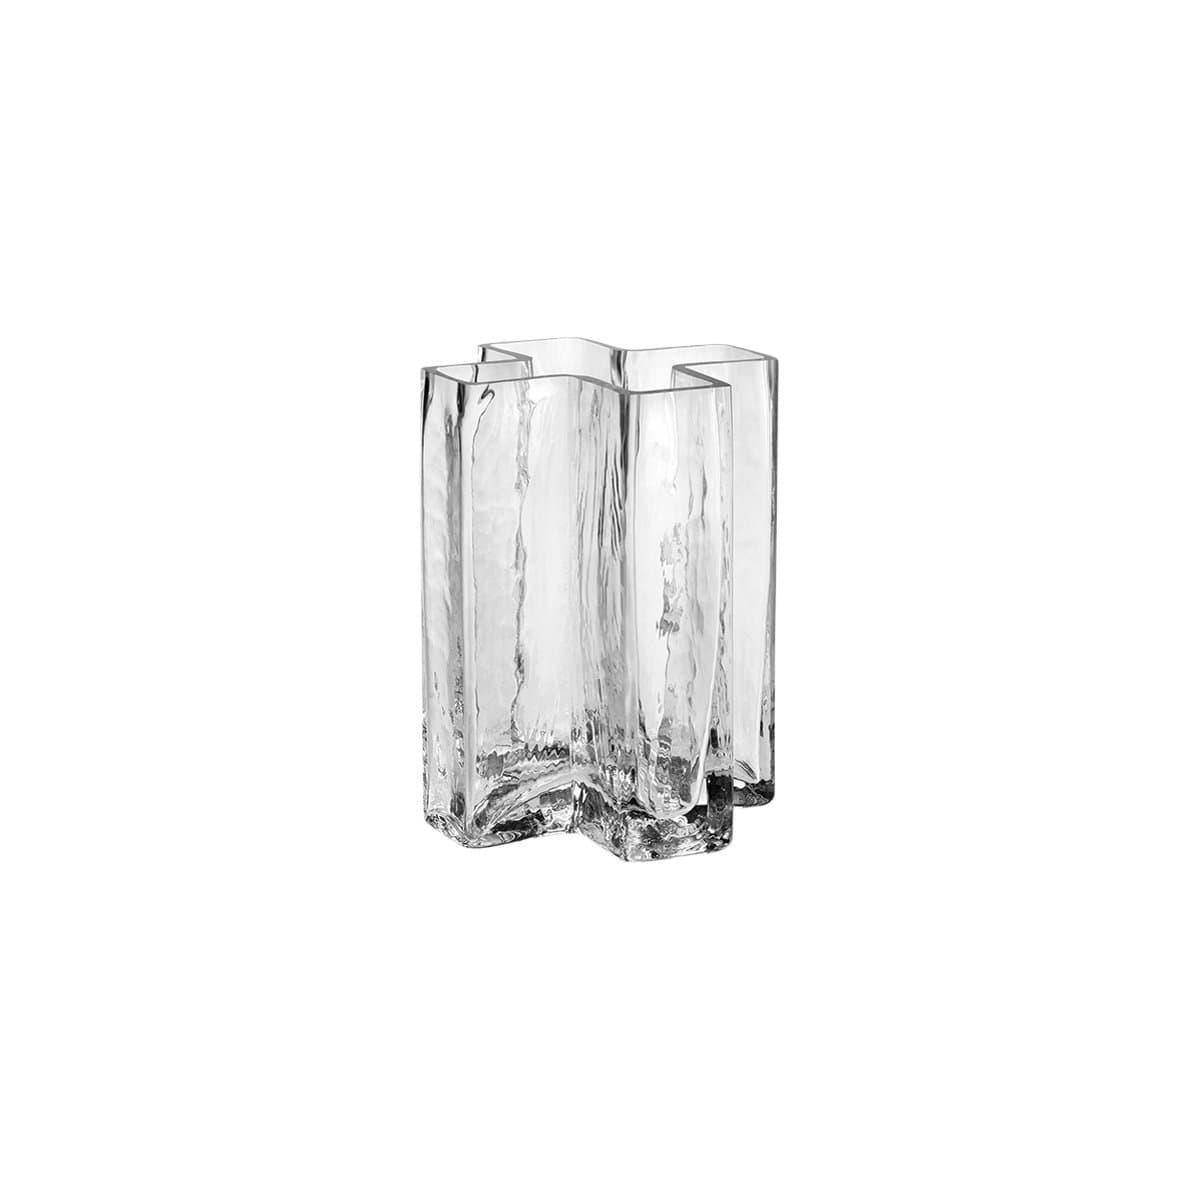 Holmegaard Decor Holmegaard Crosses Vase, Clear, 4.7""